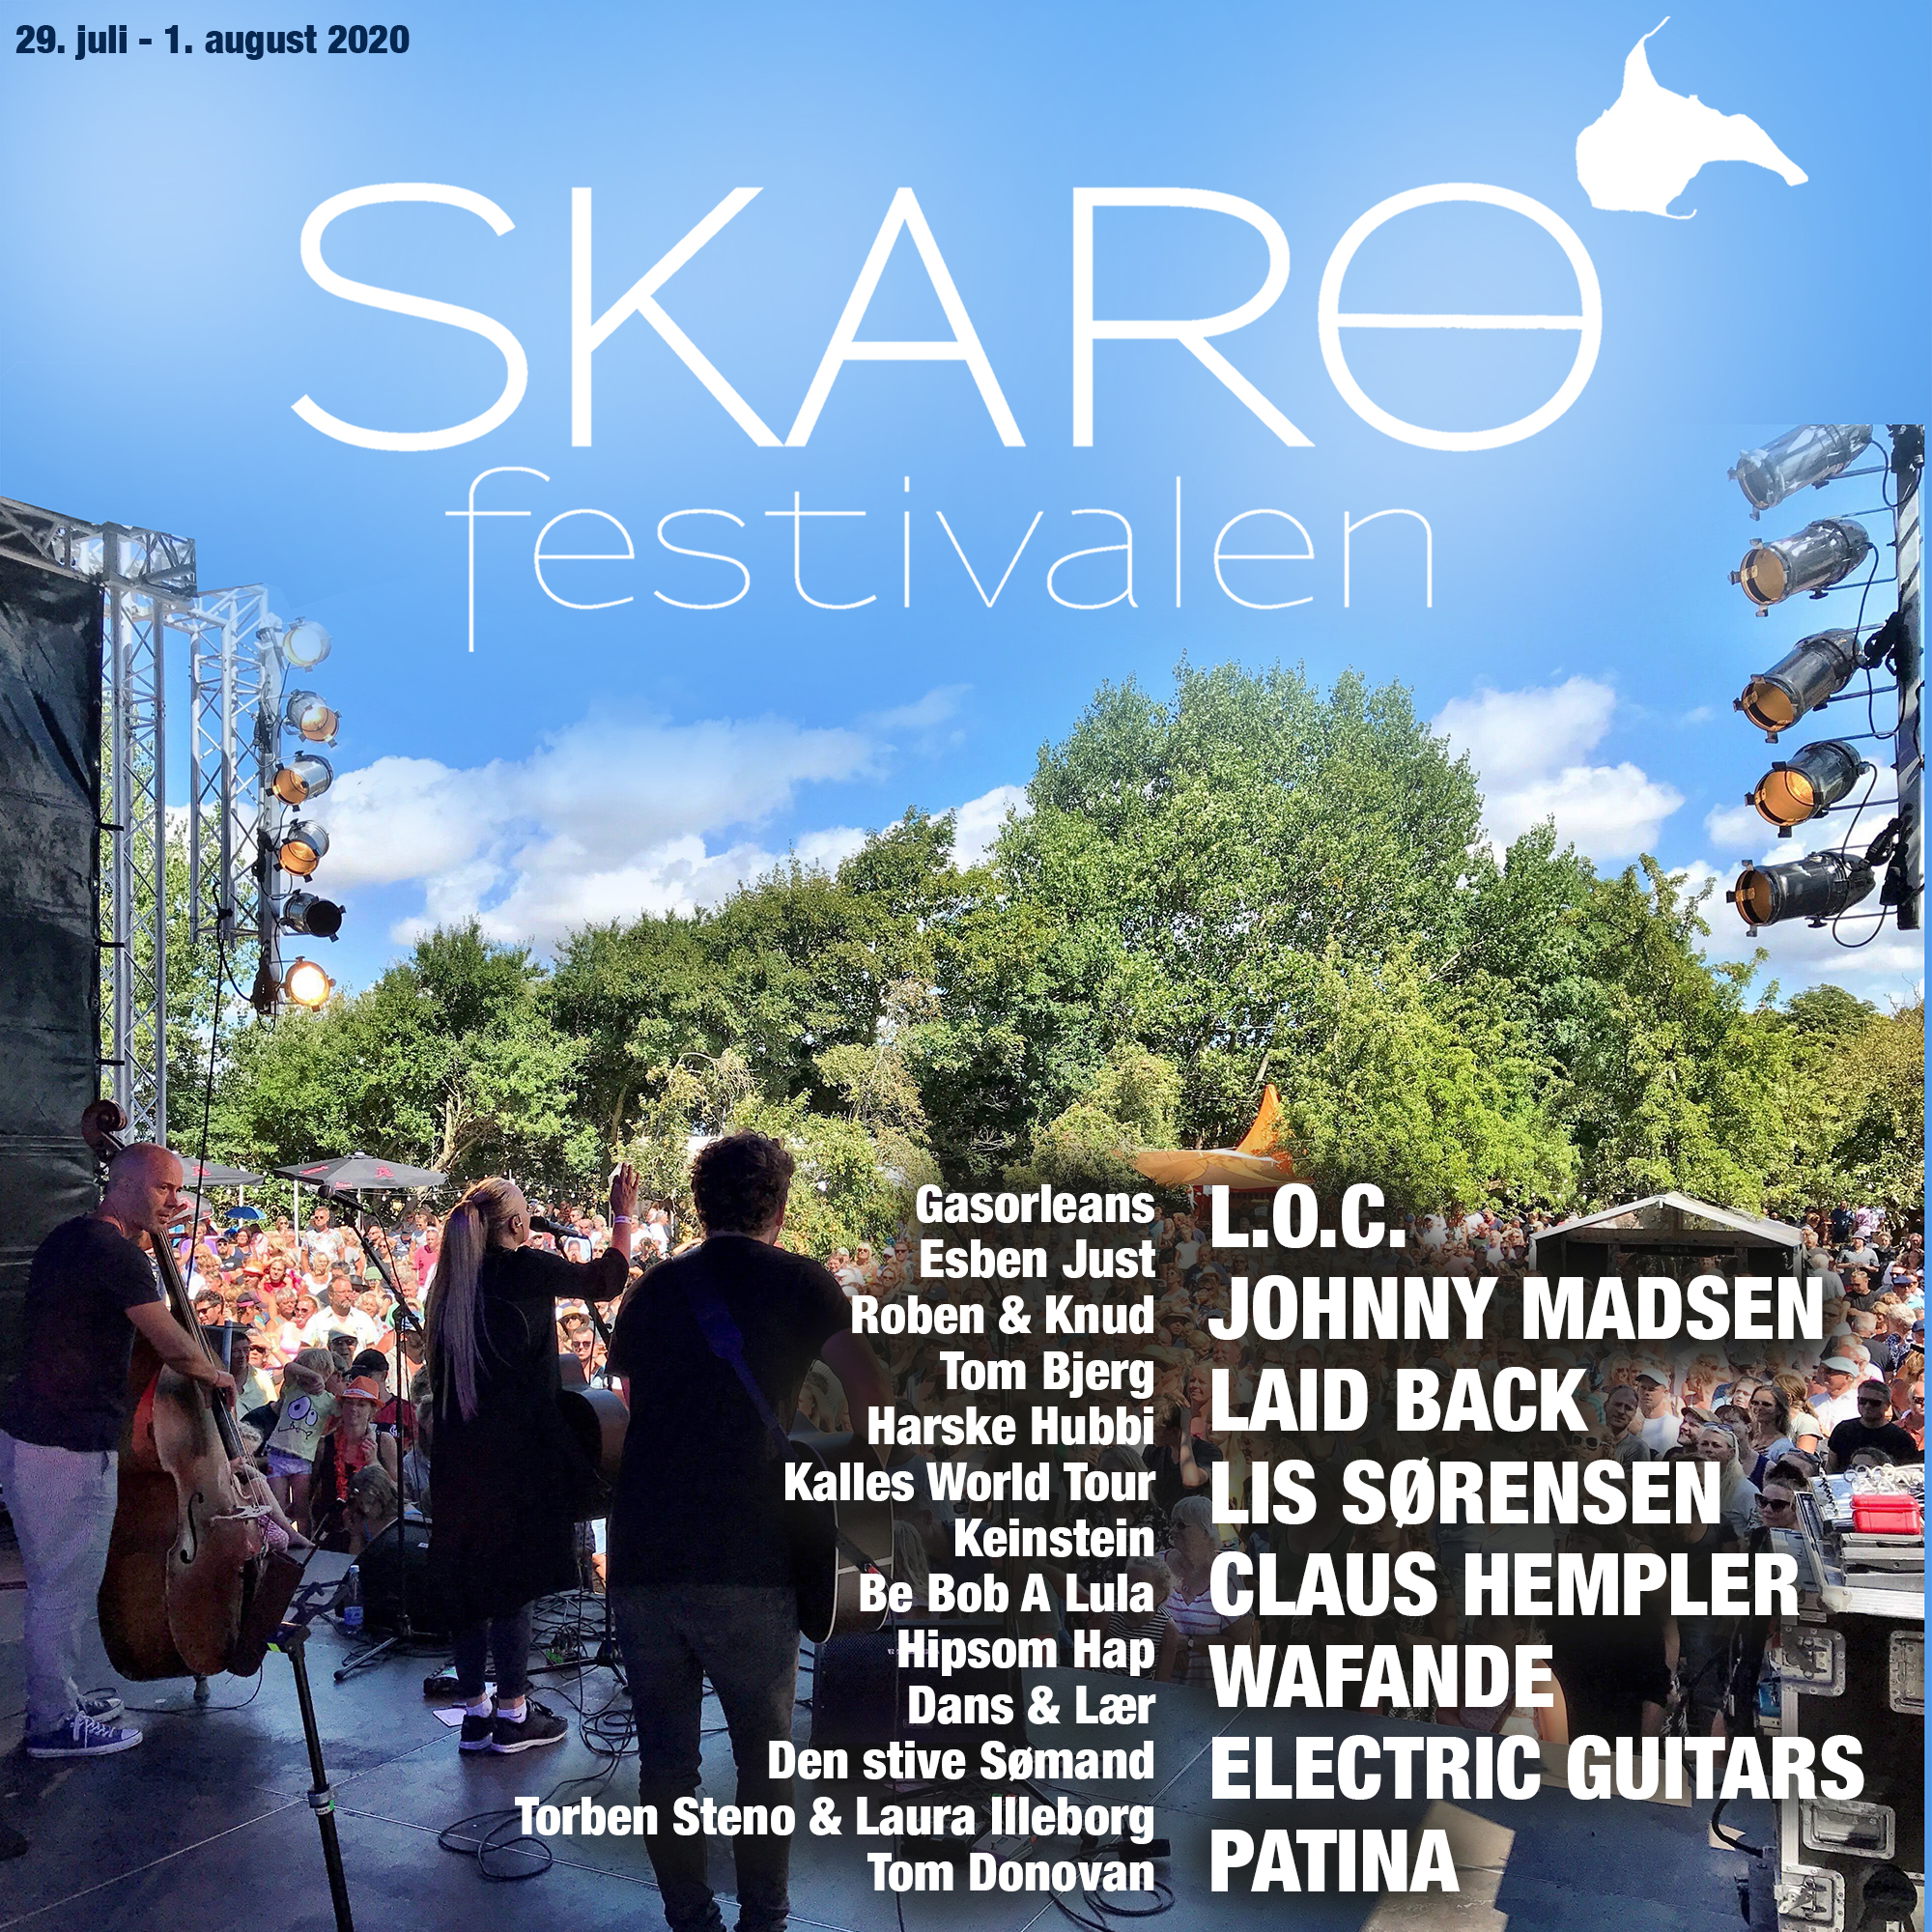 Det samlede program for Skarøfestivalen 2020